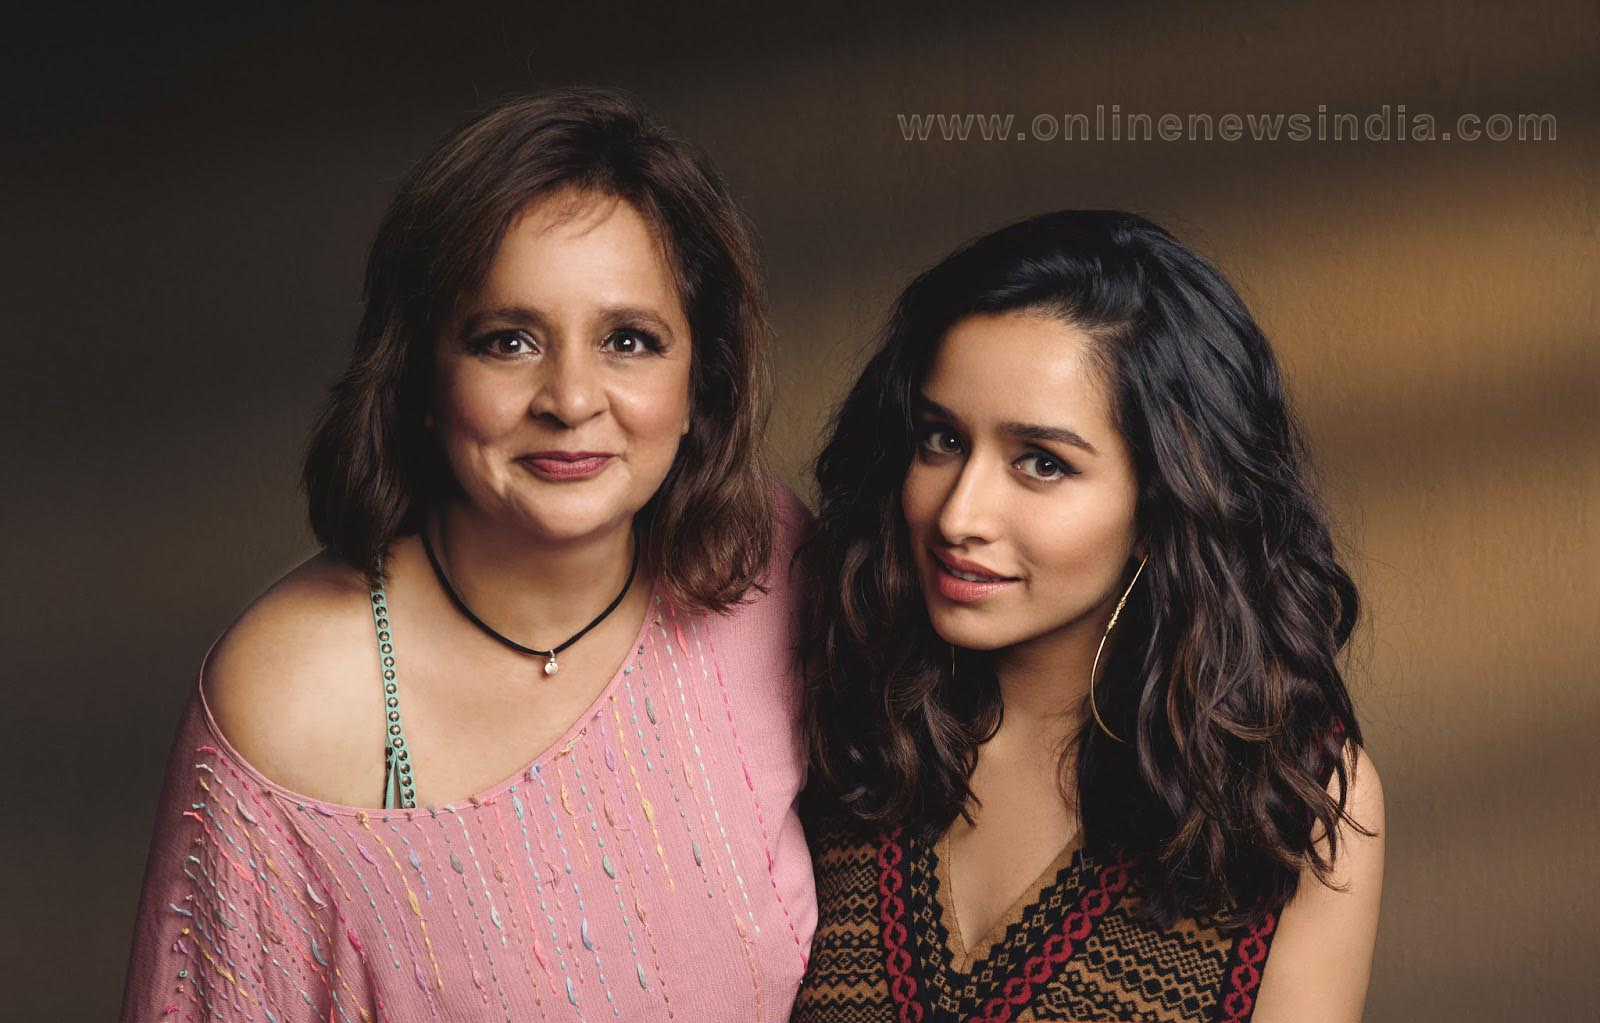 Nina Lekhi and Shraddha Kapoor